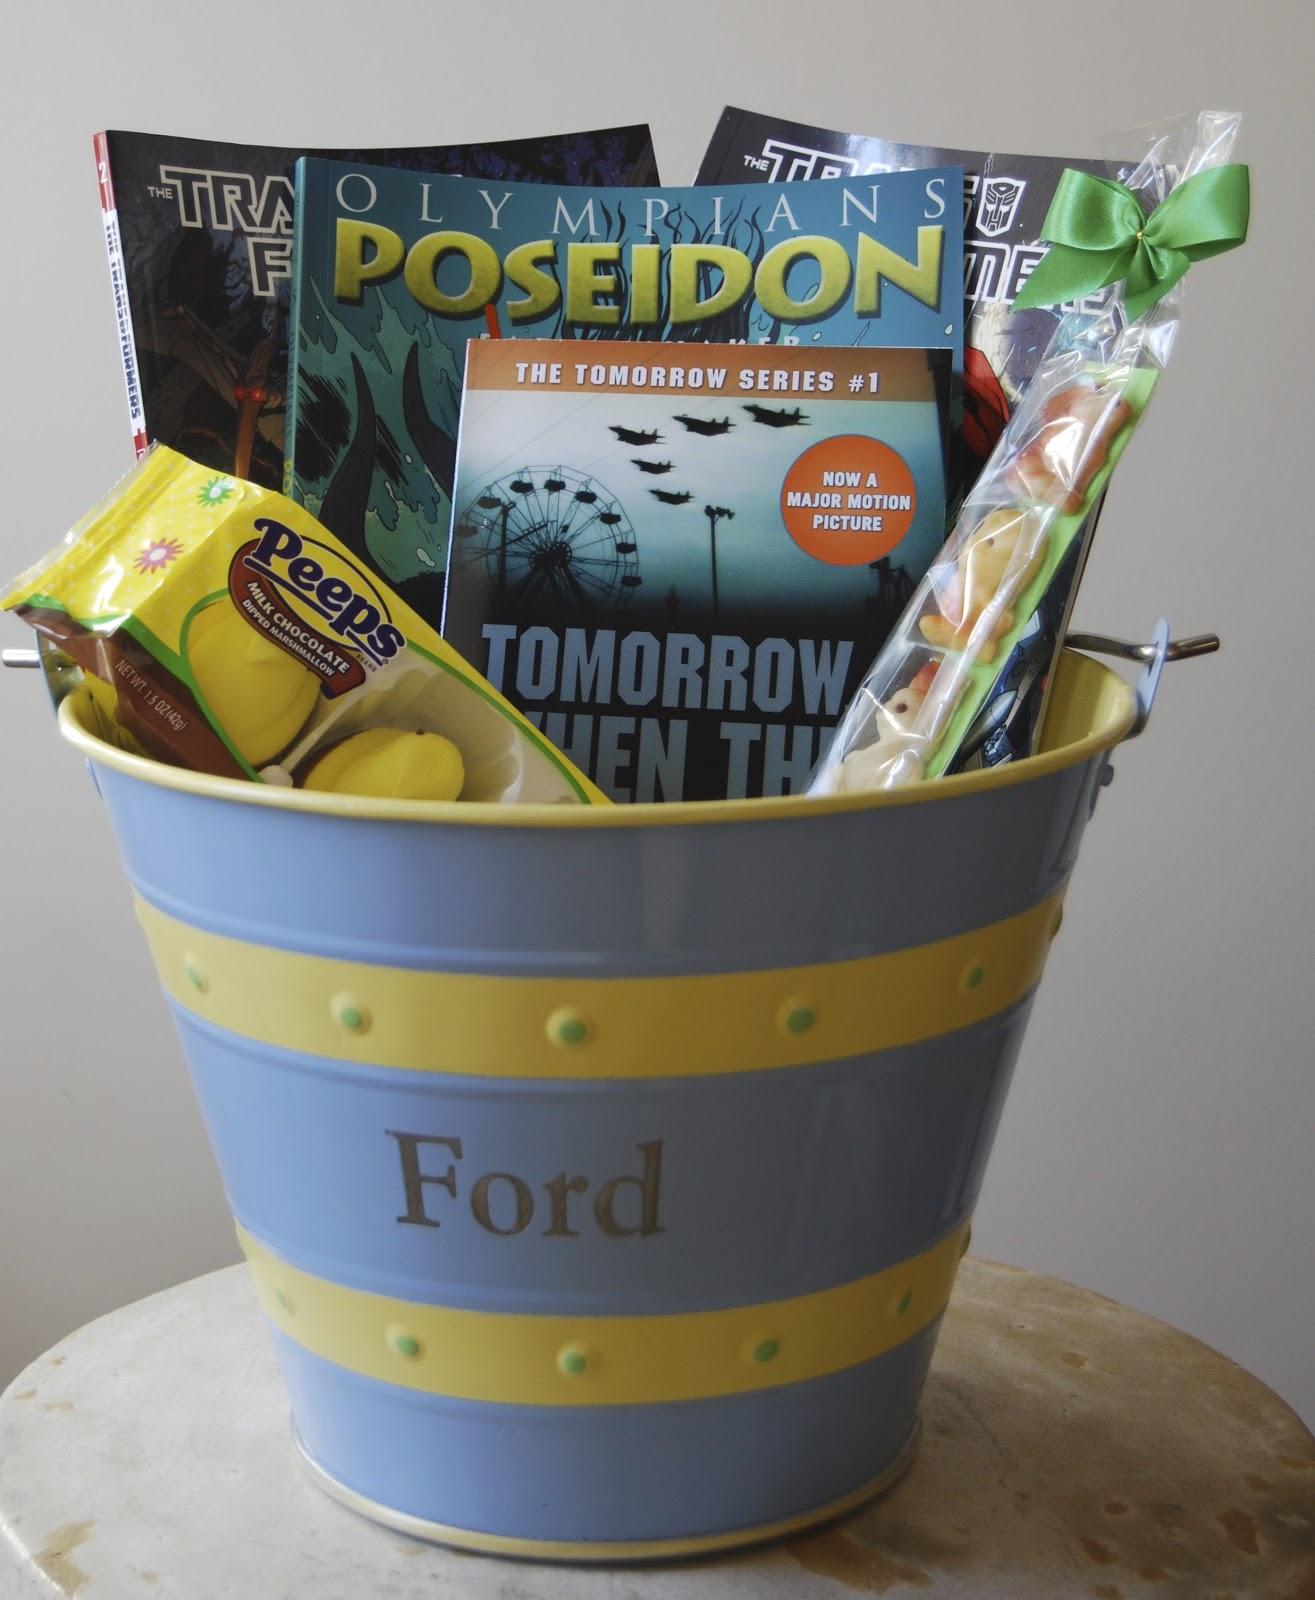 One great book easter book baskets basket for my fourteen year old son who is too old but doesnt want to miss out on the books and chocolate bunny negle Images